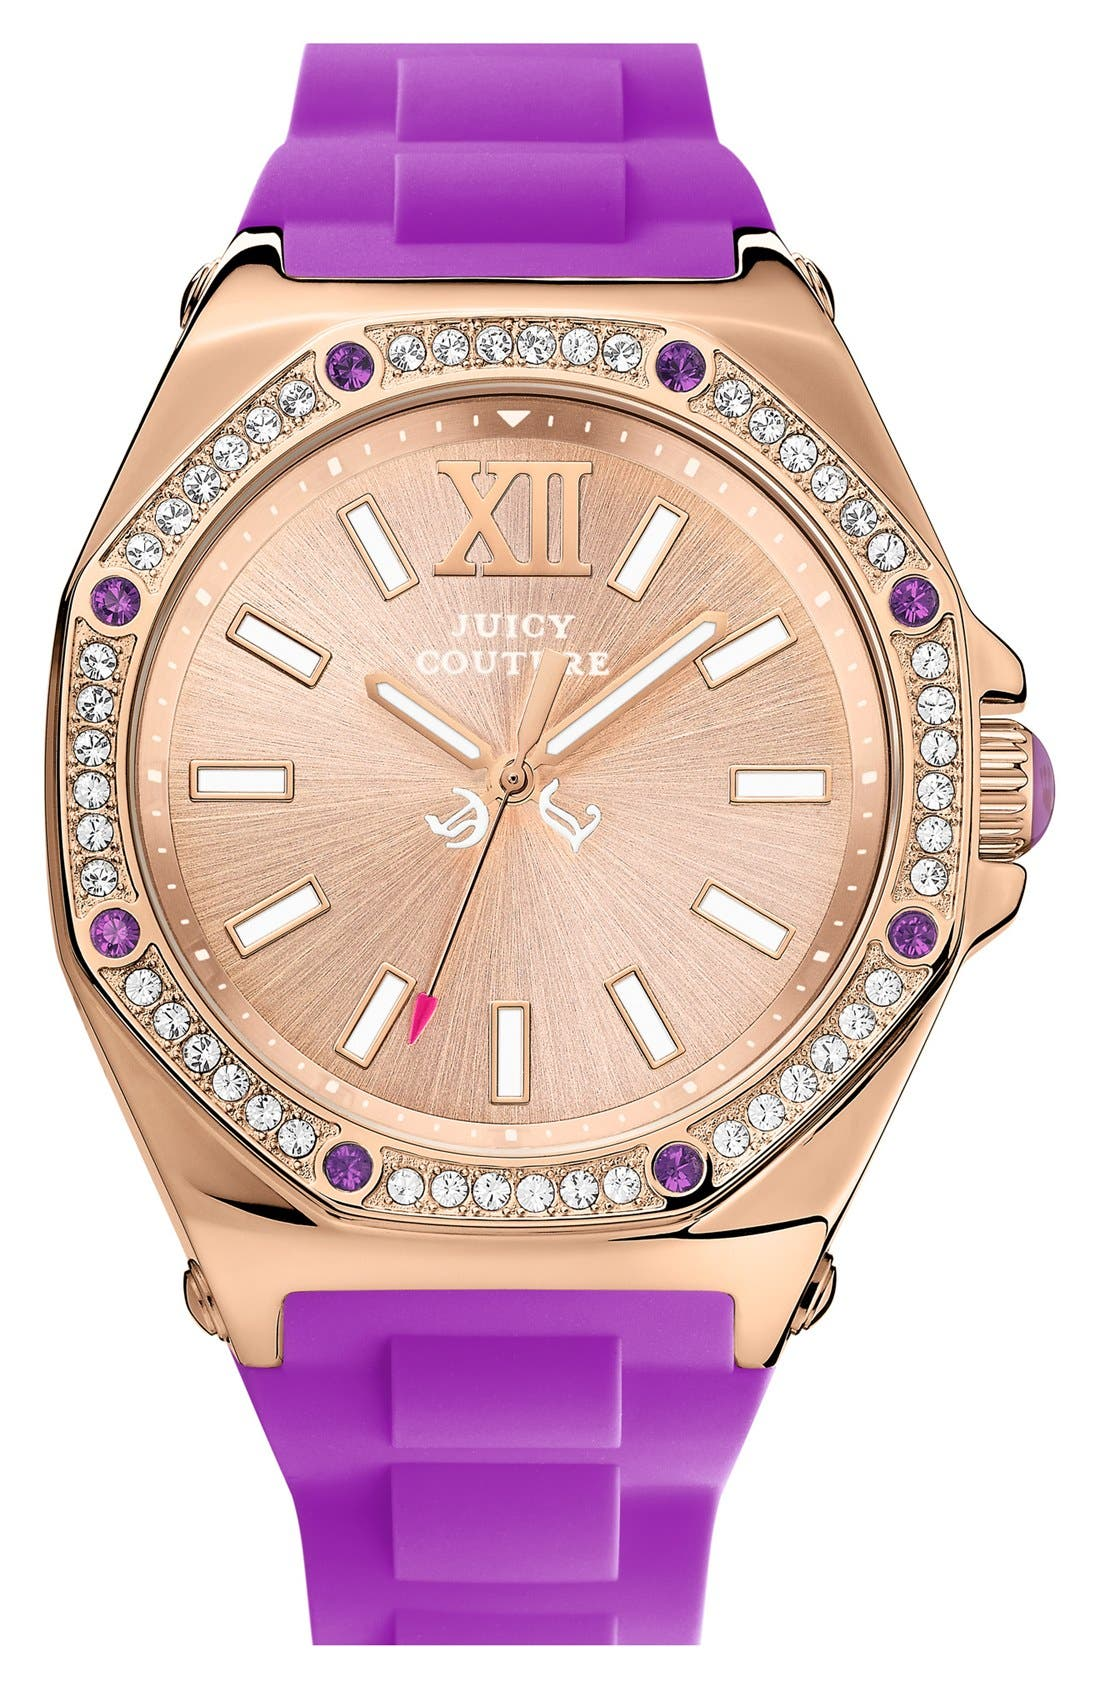 Main Image - Juicy Couture 'Chelsea' Octagonal Jelly Strap Watch, 42mm